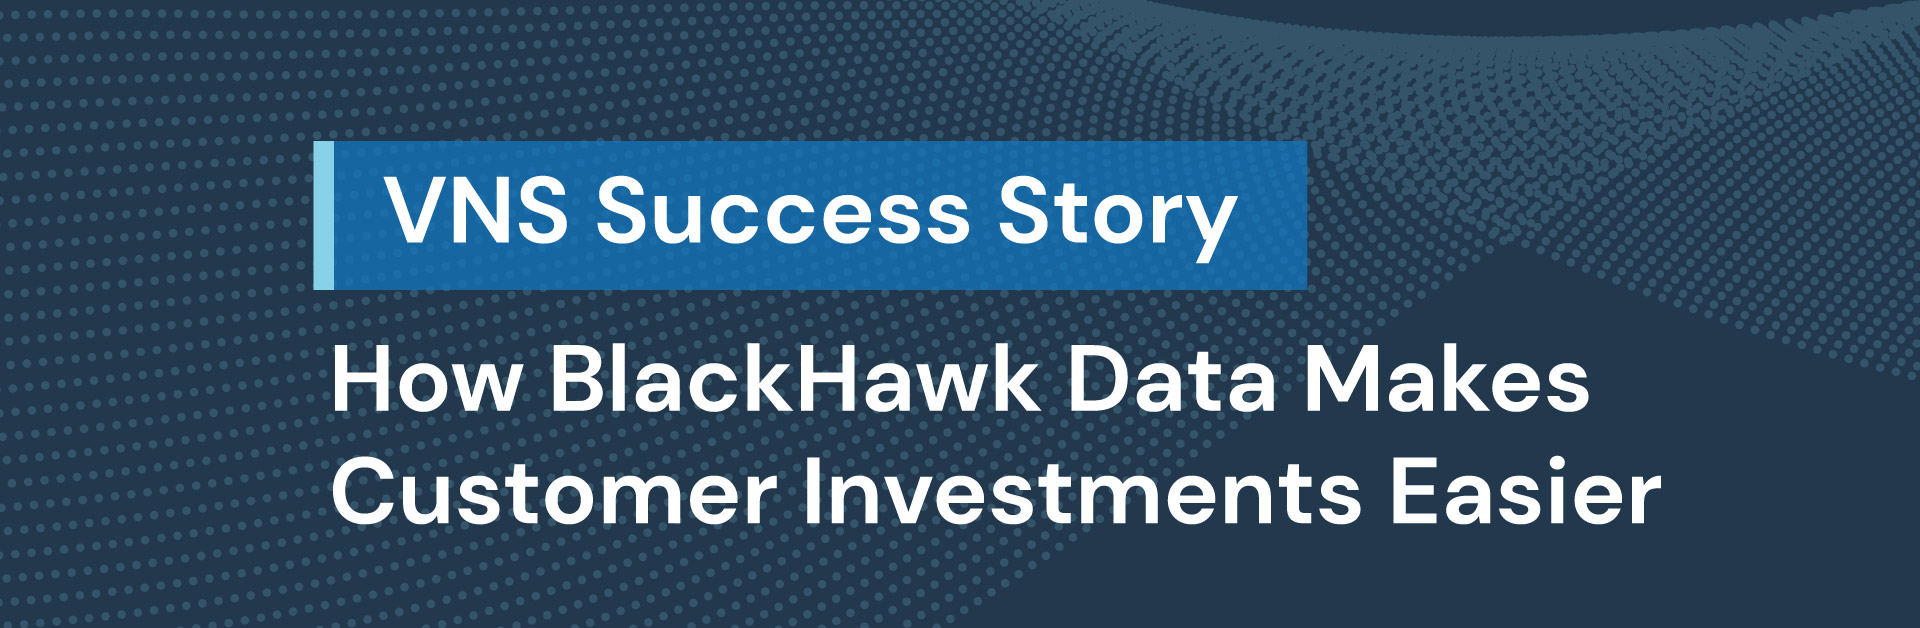 Contact Center Success Story: How BlackHawk Data Makes Customer Investments Easier